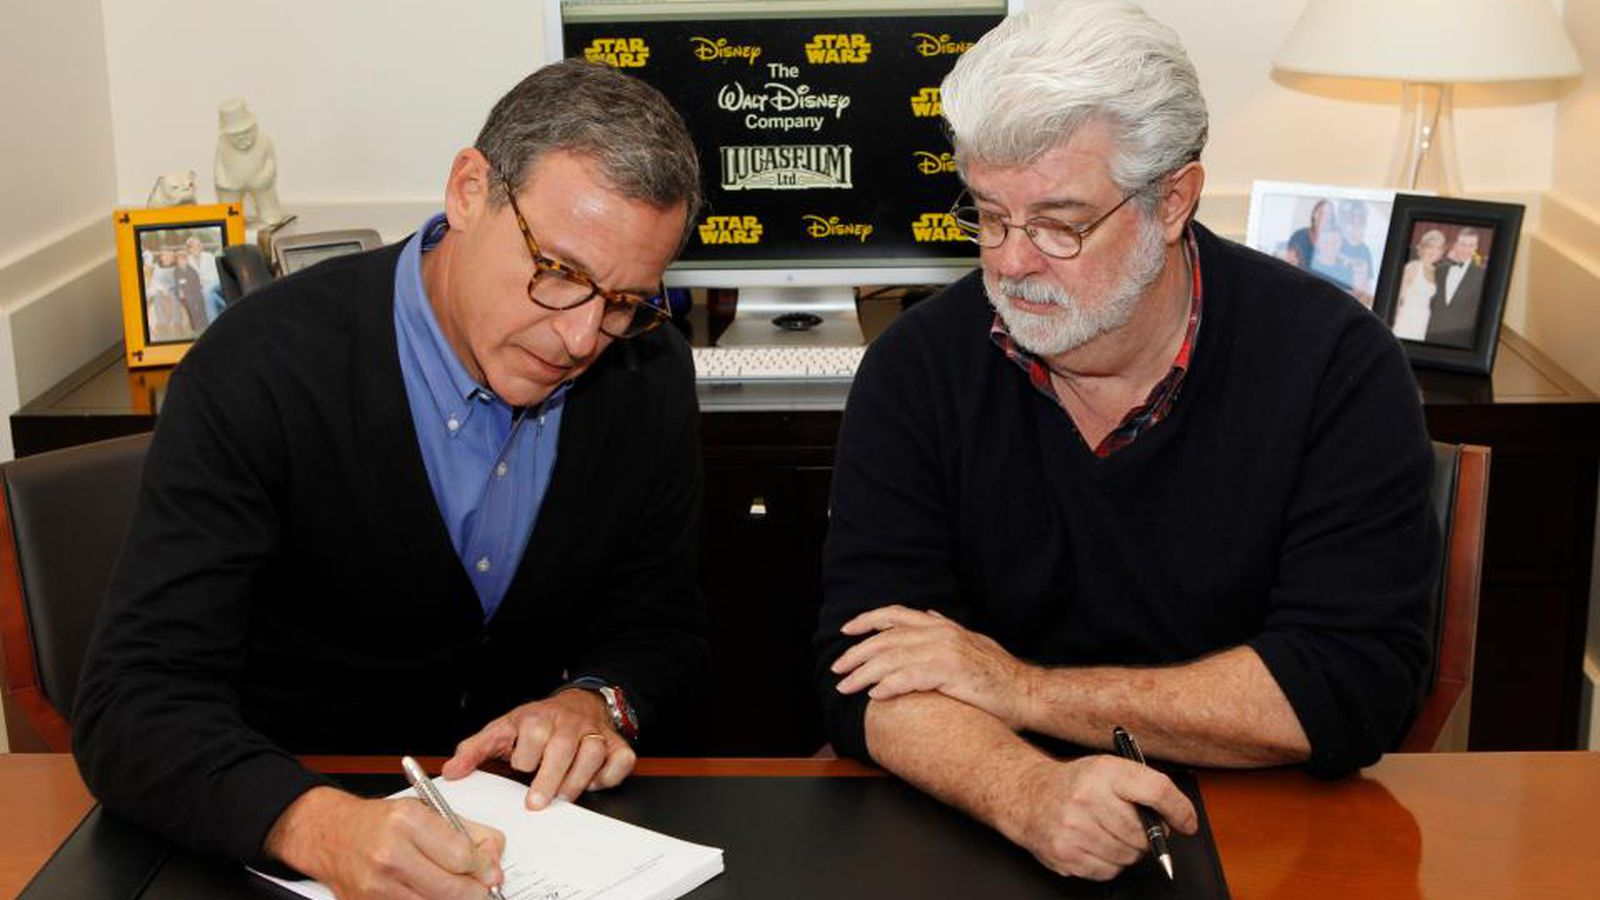 George Lucas and Disney CEO Bob Iger sign the documents that close Lucasfilm's sale